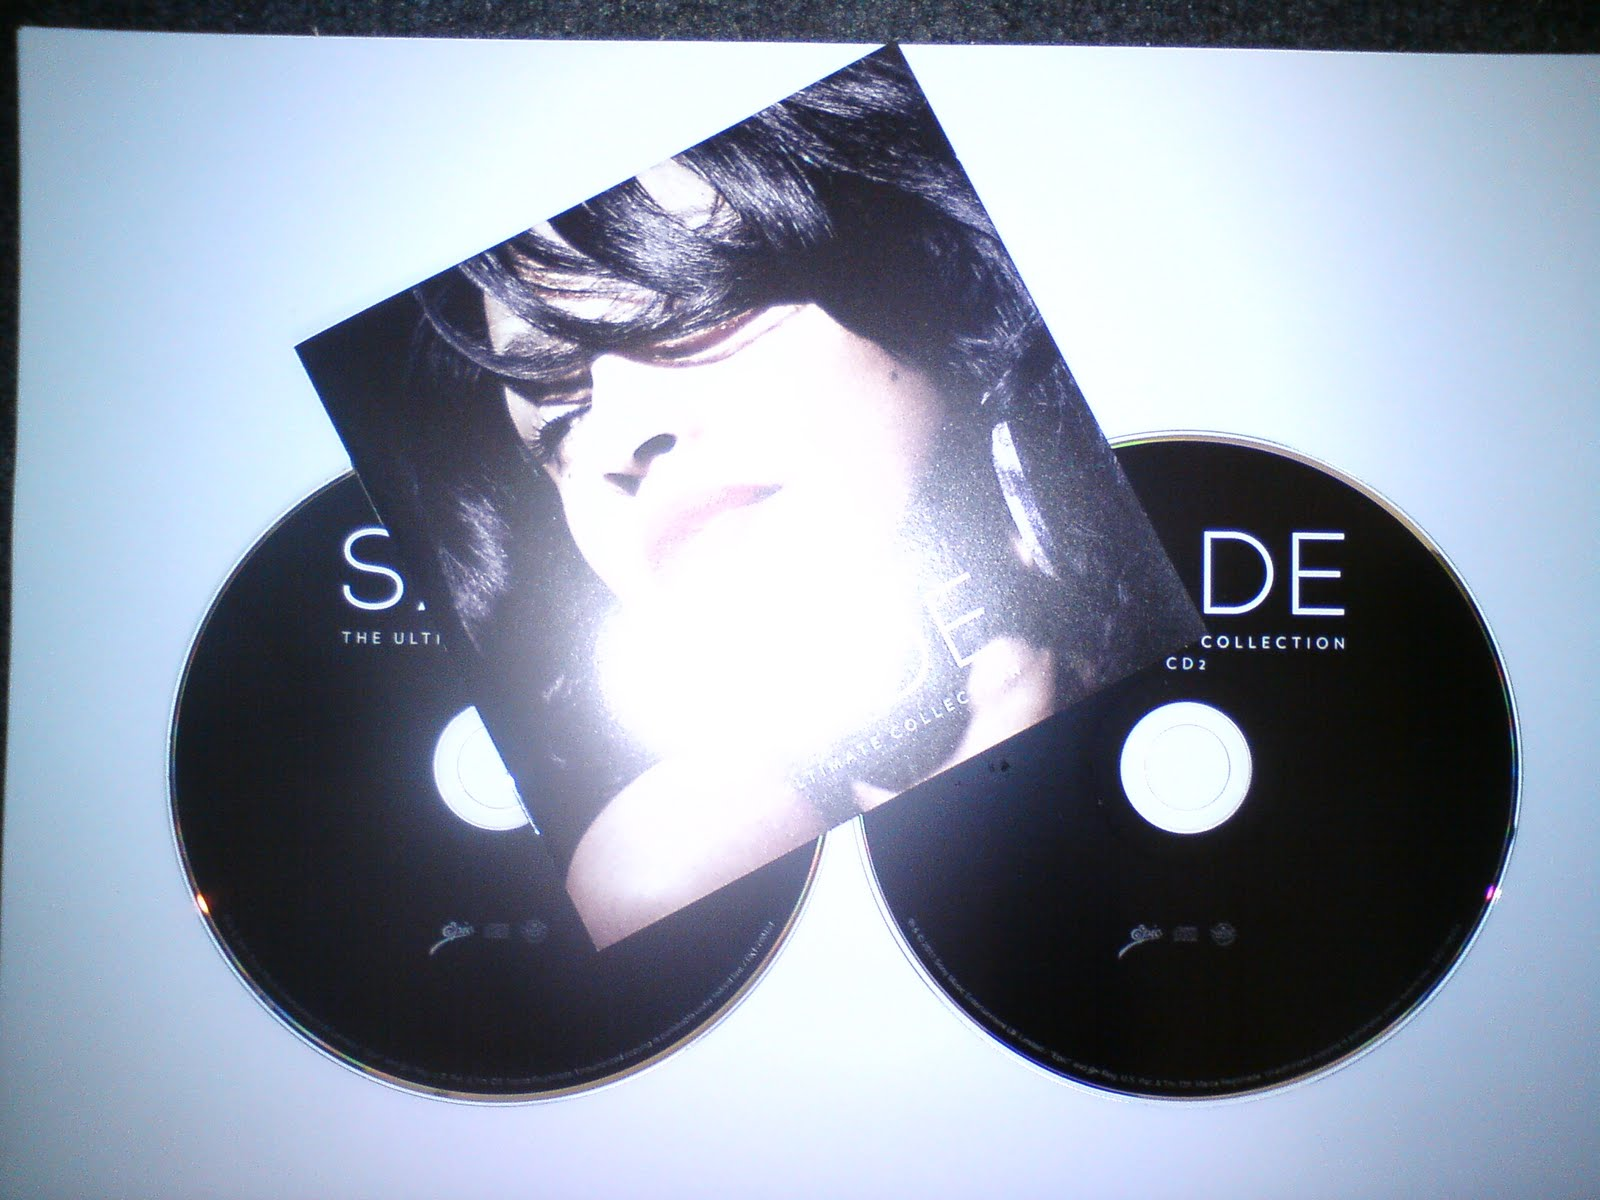 Sade The Ultimate Collection: 01. Sade By Your Side Lyrics